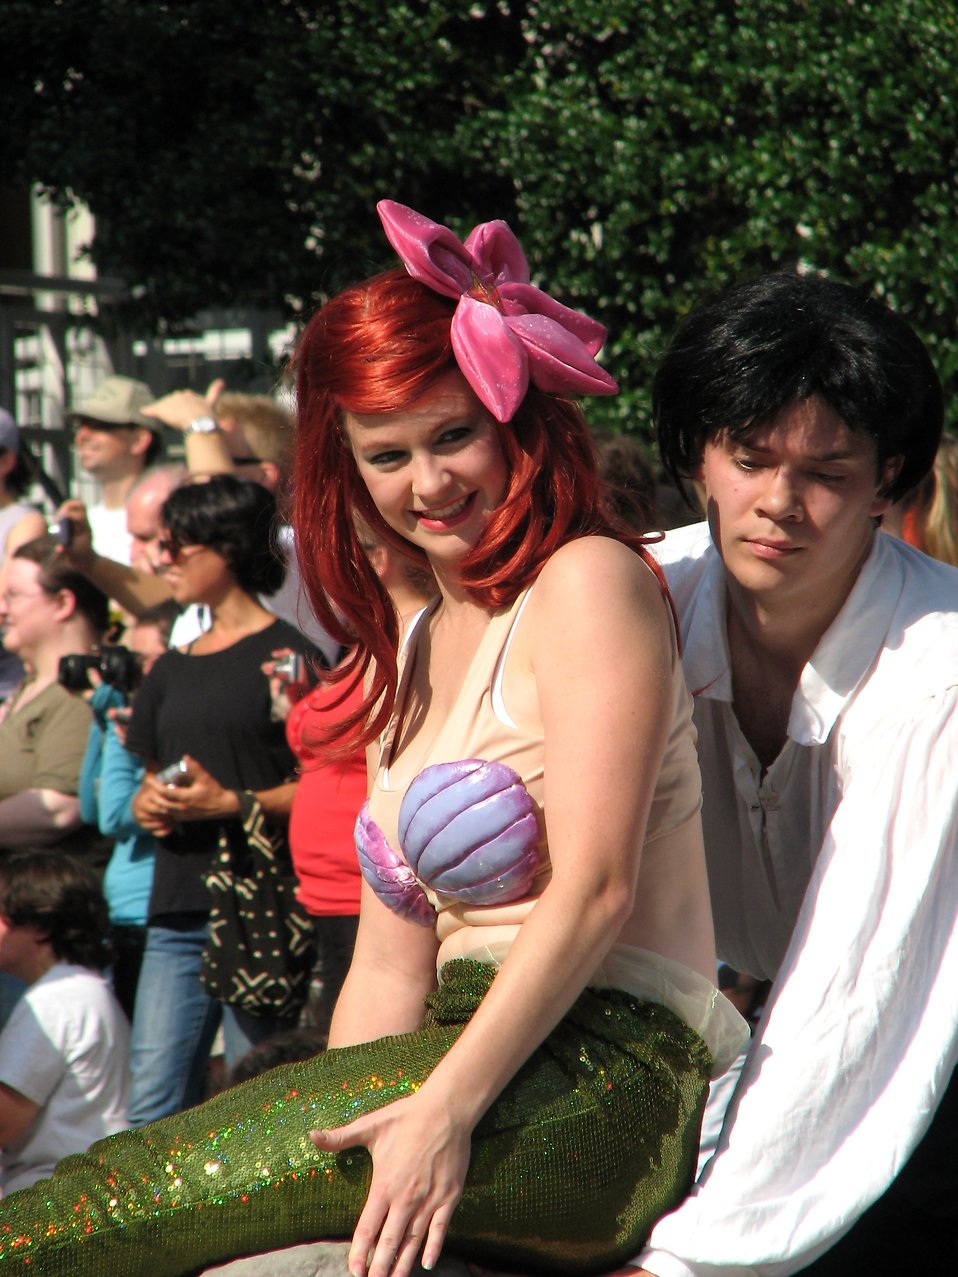 Man and a mermaid in the 2008 Dragoncon parade : Free Stock Photo